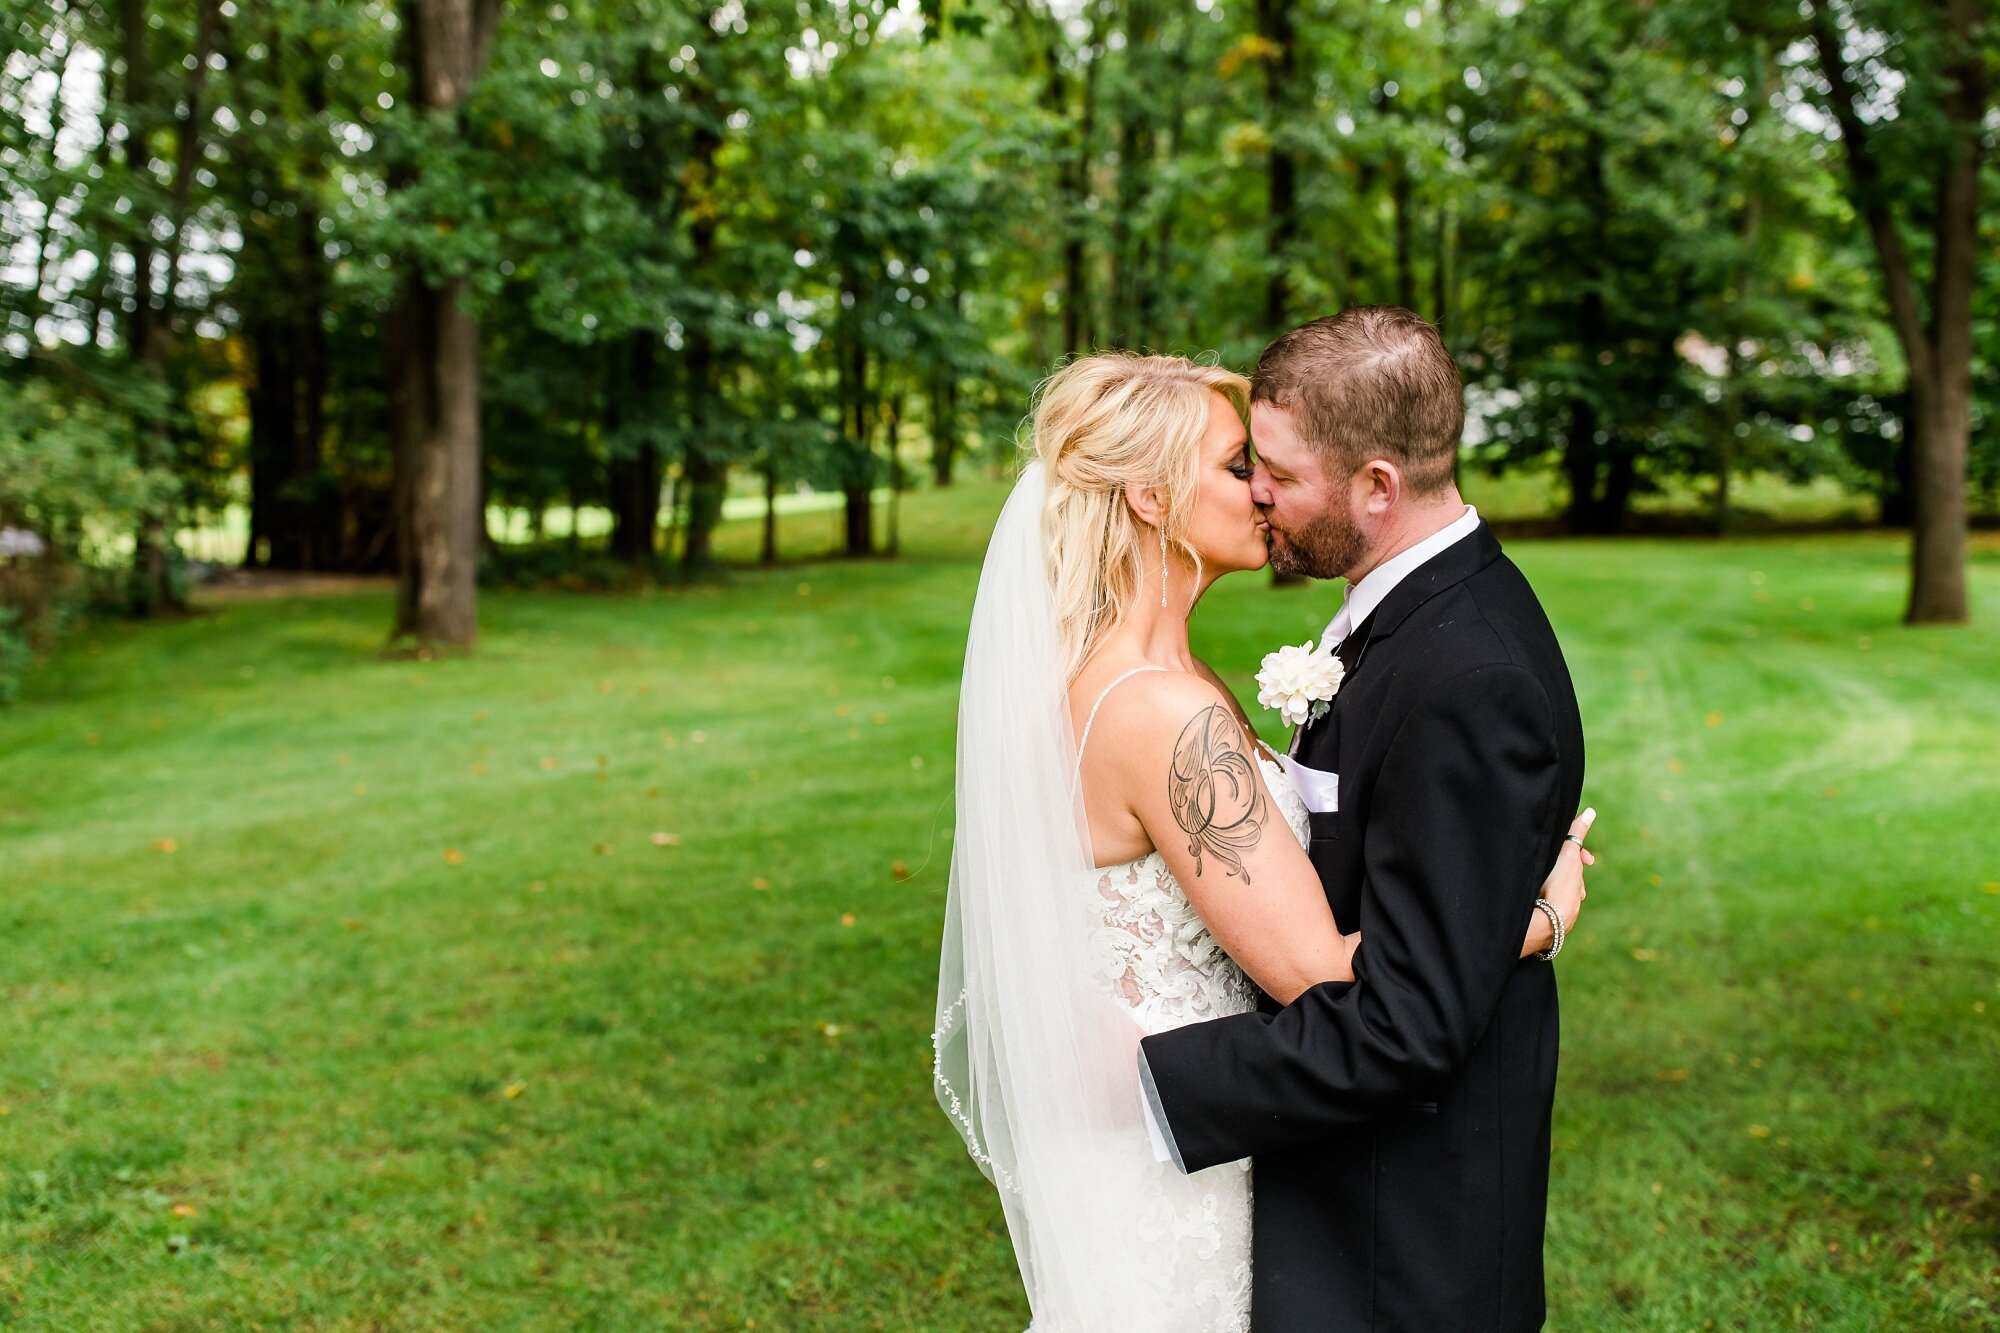 Amber Langerud Photography_Eagle Lake Rustic Styled Outdoor Wedding in Minnesota_6894.jpg